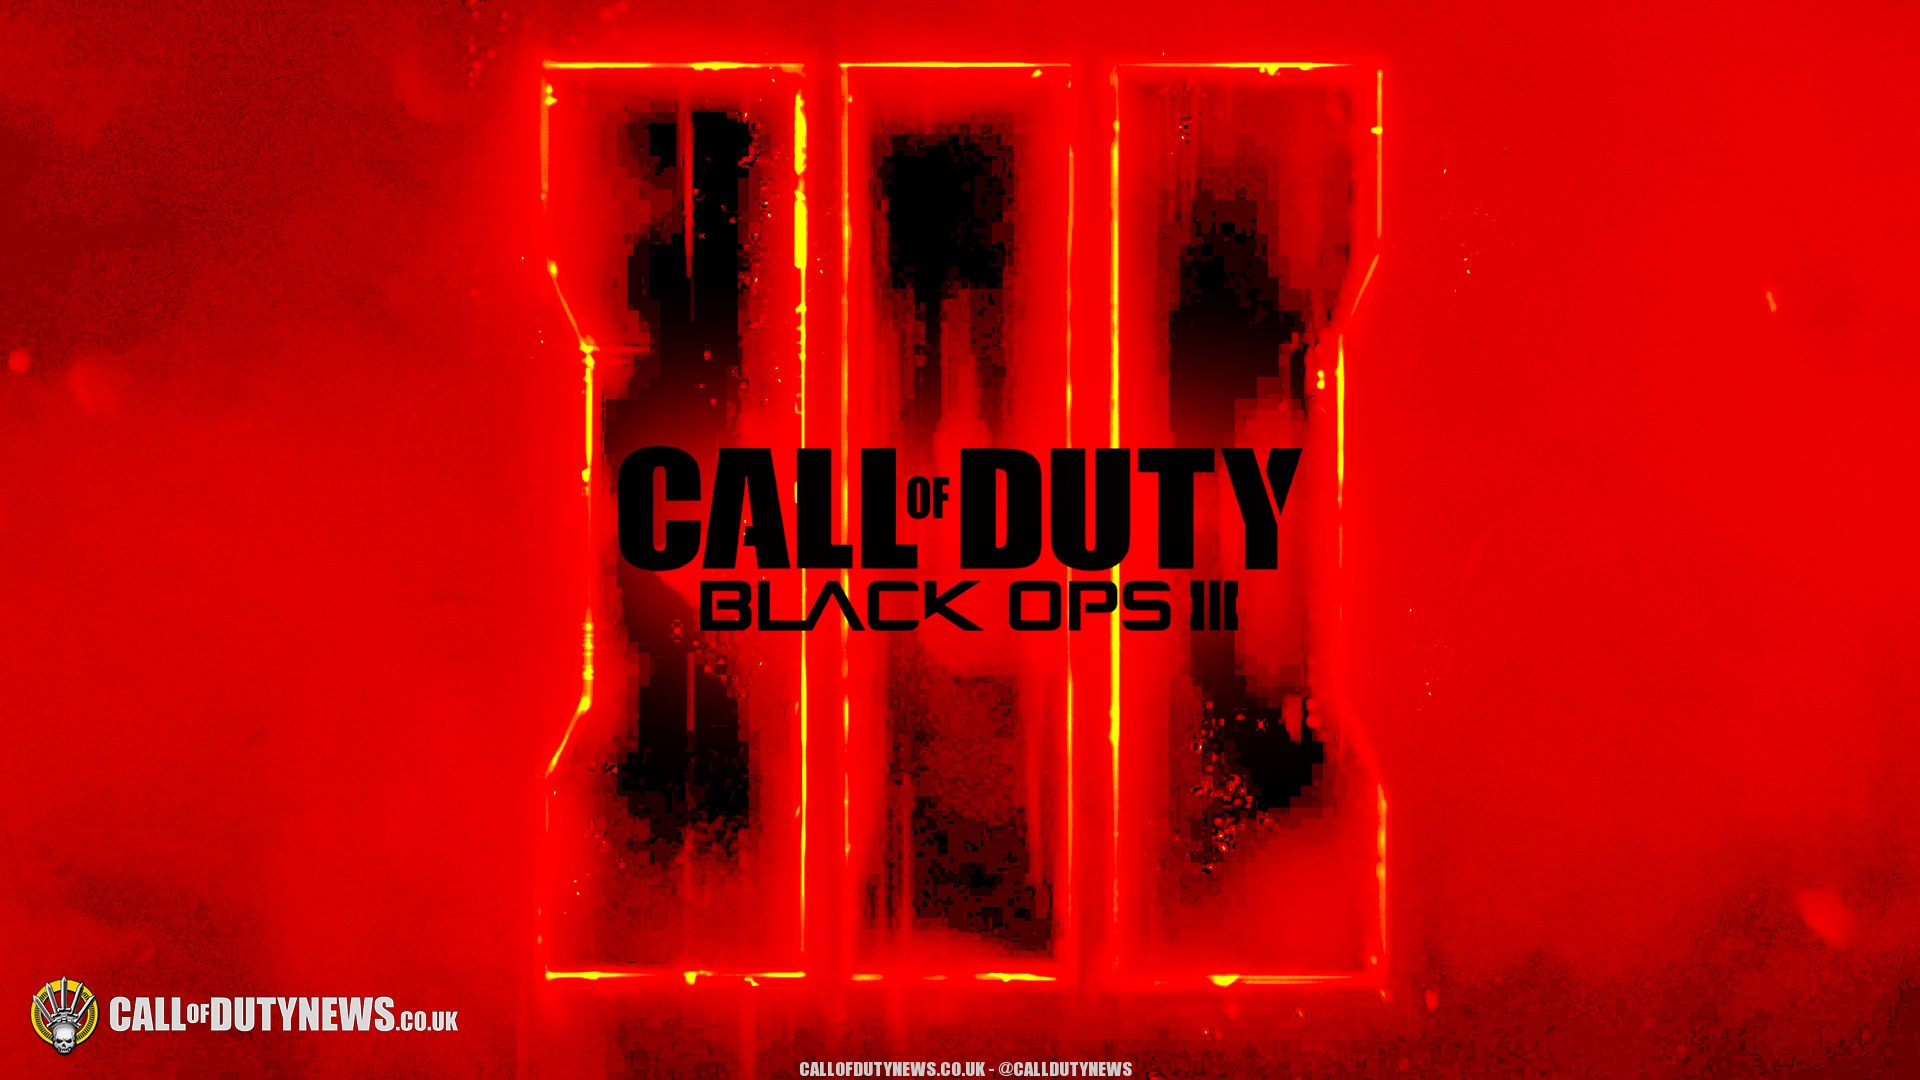 Free Download Enjoy These 1080p Hd Black Ops 3 Wallpapers By